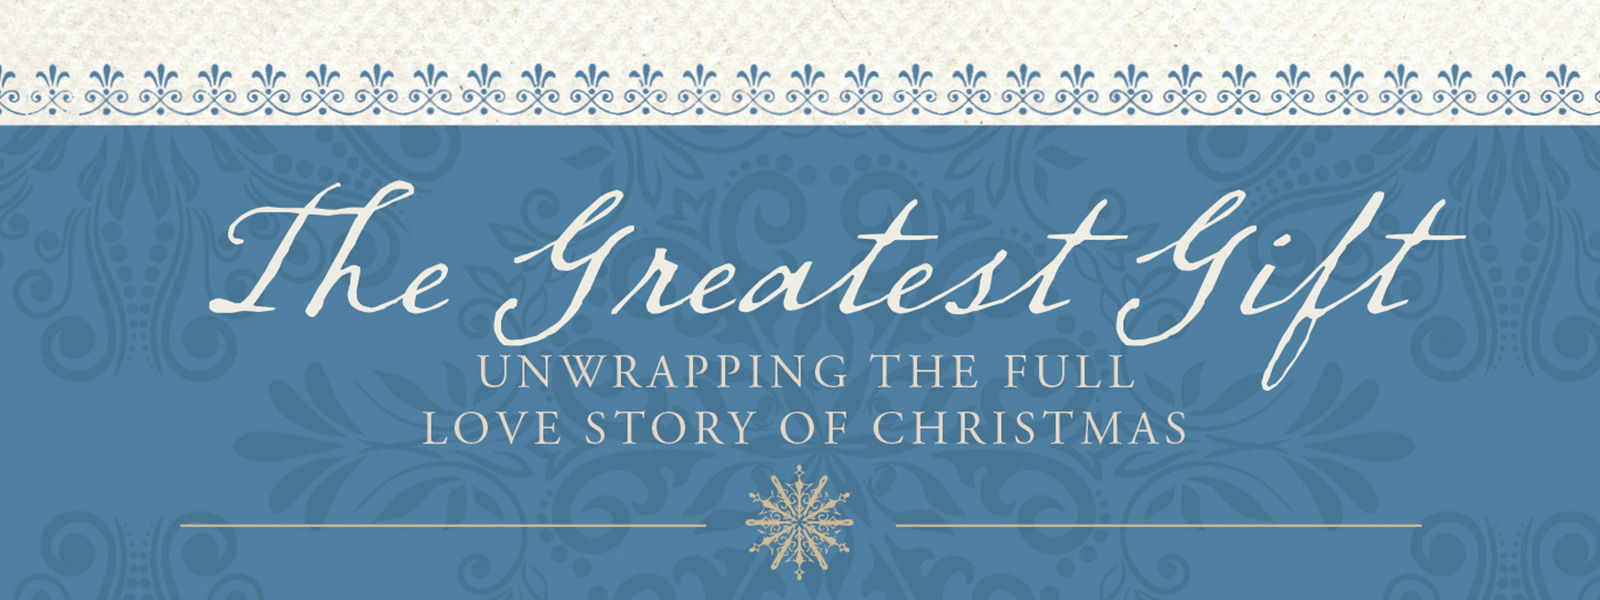 RightNow Media :: Streaming Video Bible Study : The Greatest Gift ...